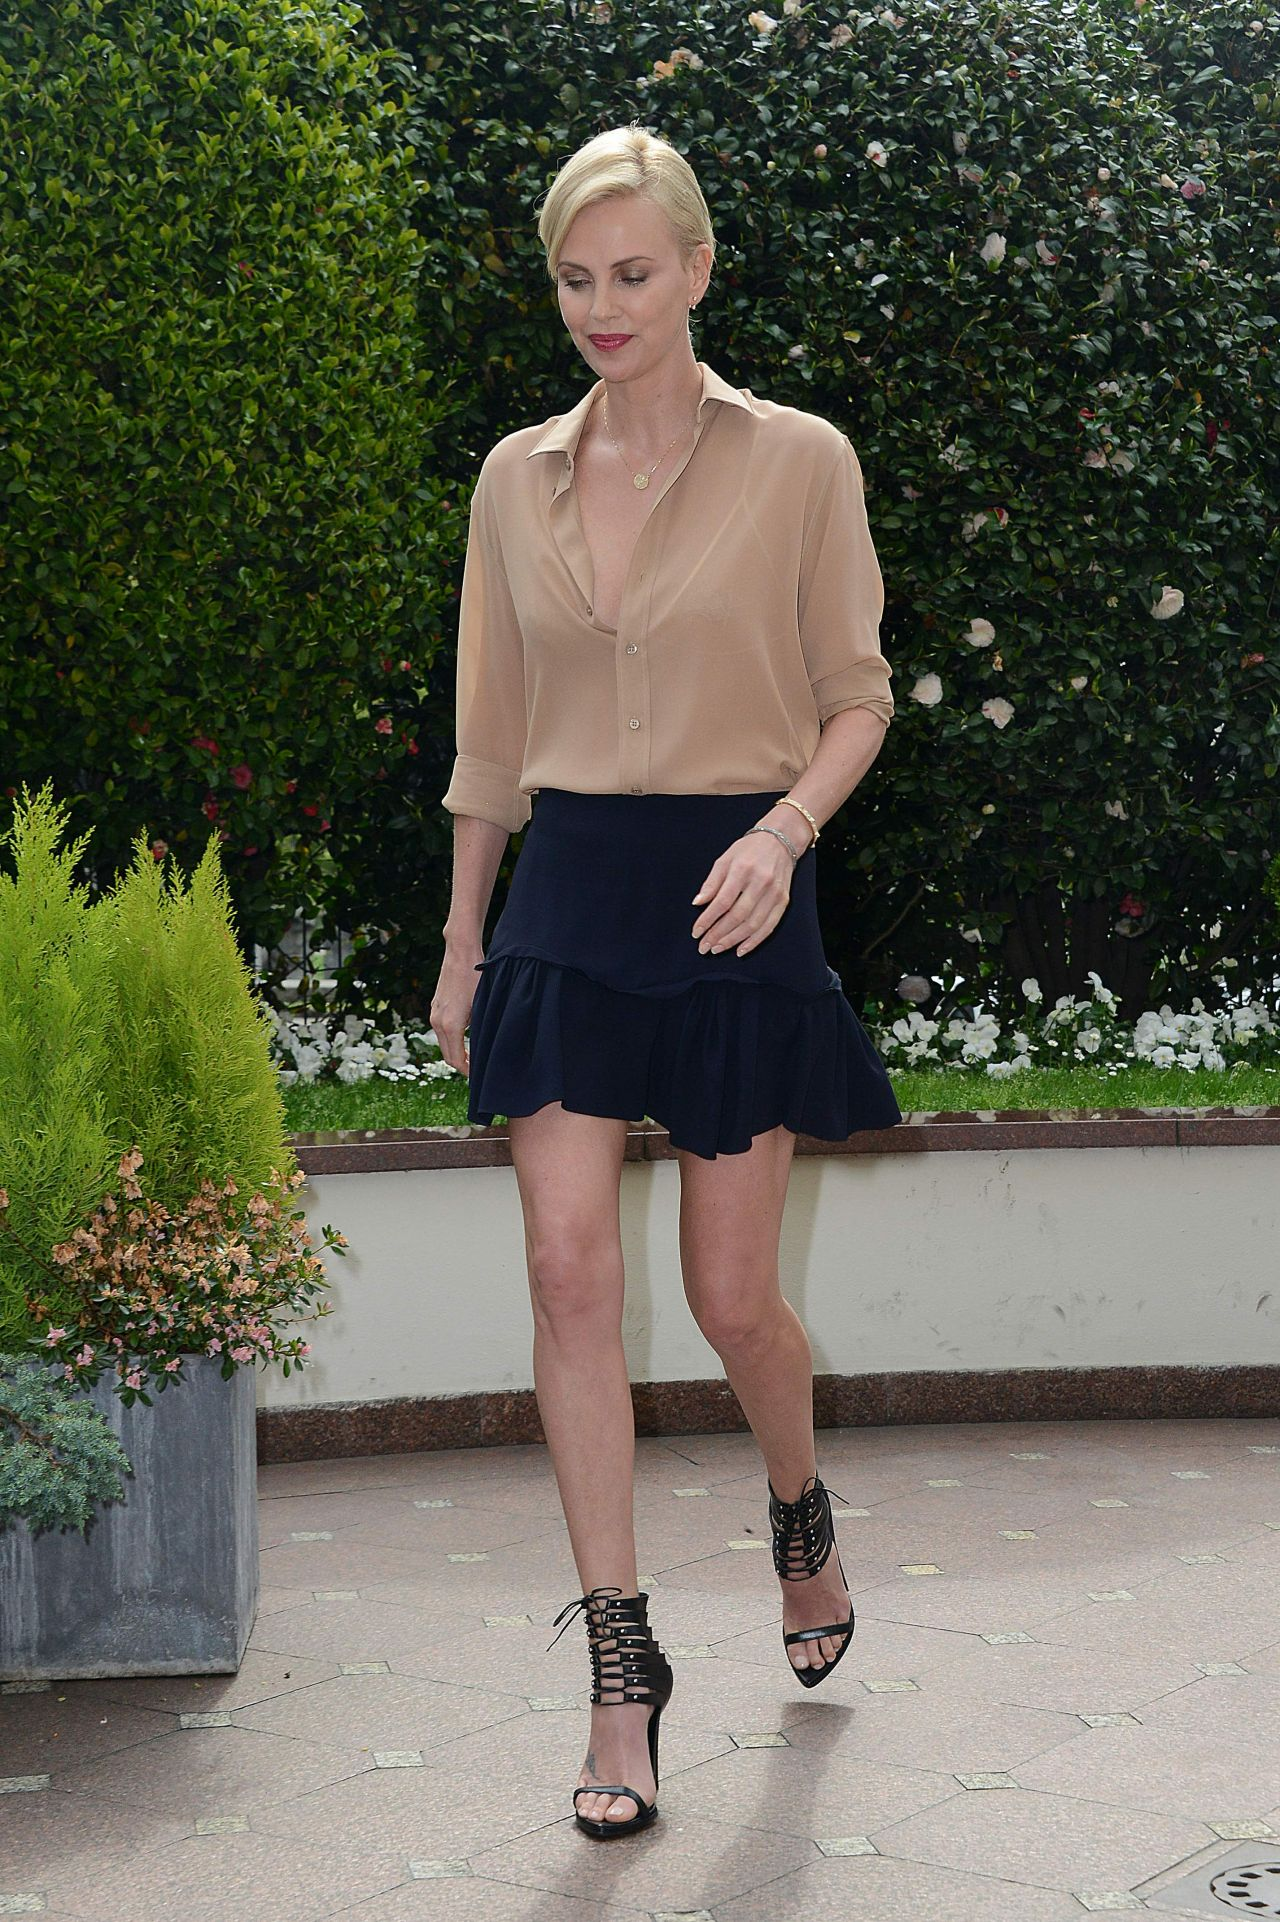 charlize-theron-the-huntsman-and-the-ice-queen-photocall-in-milan-italy-8